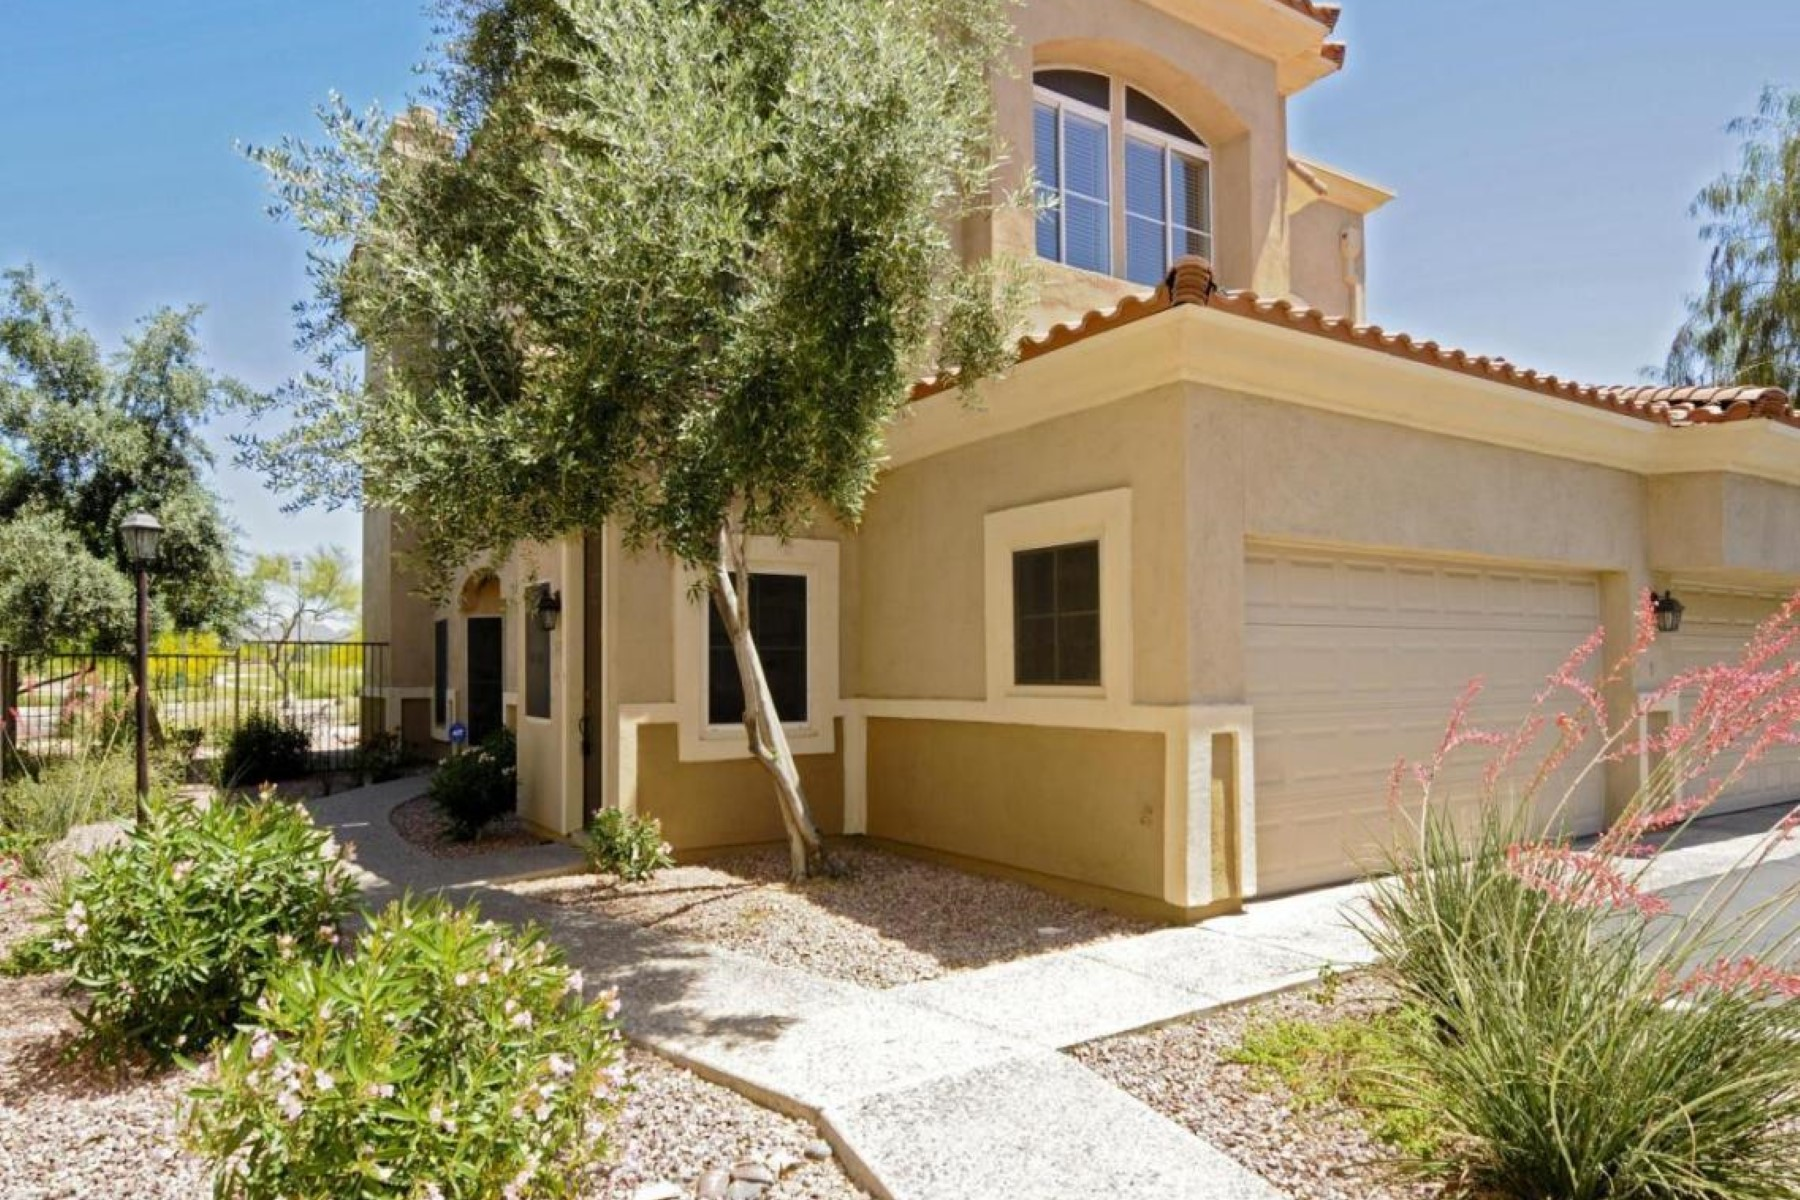 rentals property at Spacious three bedroom townhome in Montana Del Sol